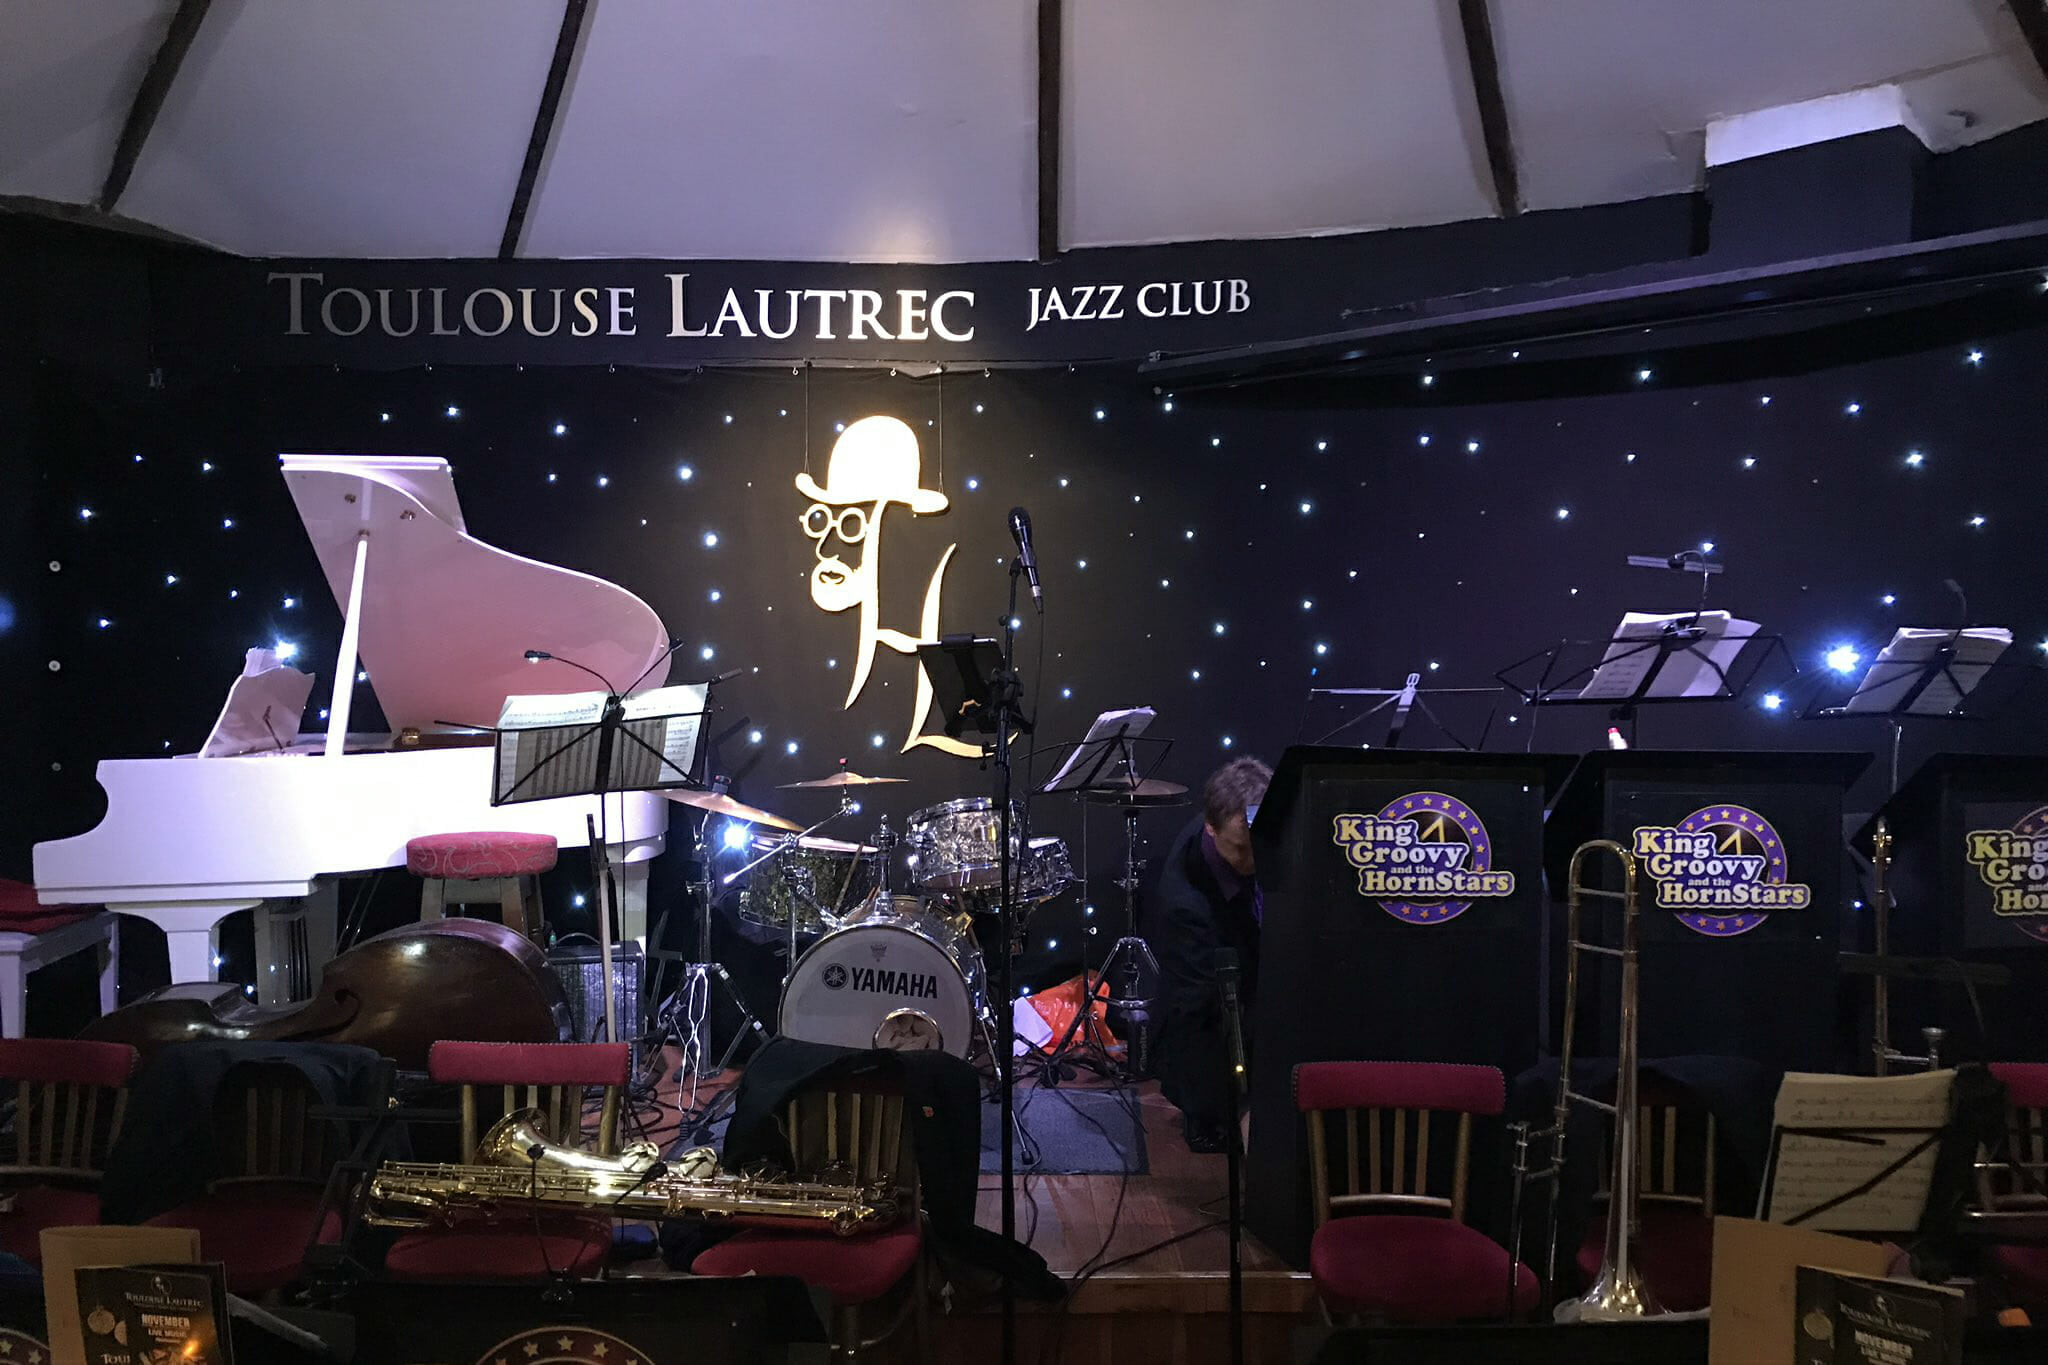 Toulouse Lautrec jazz bar